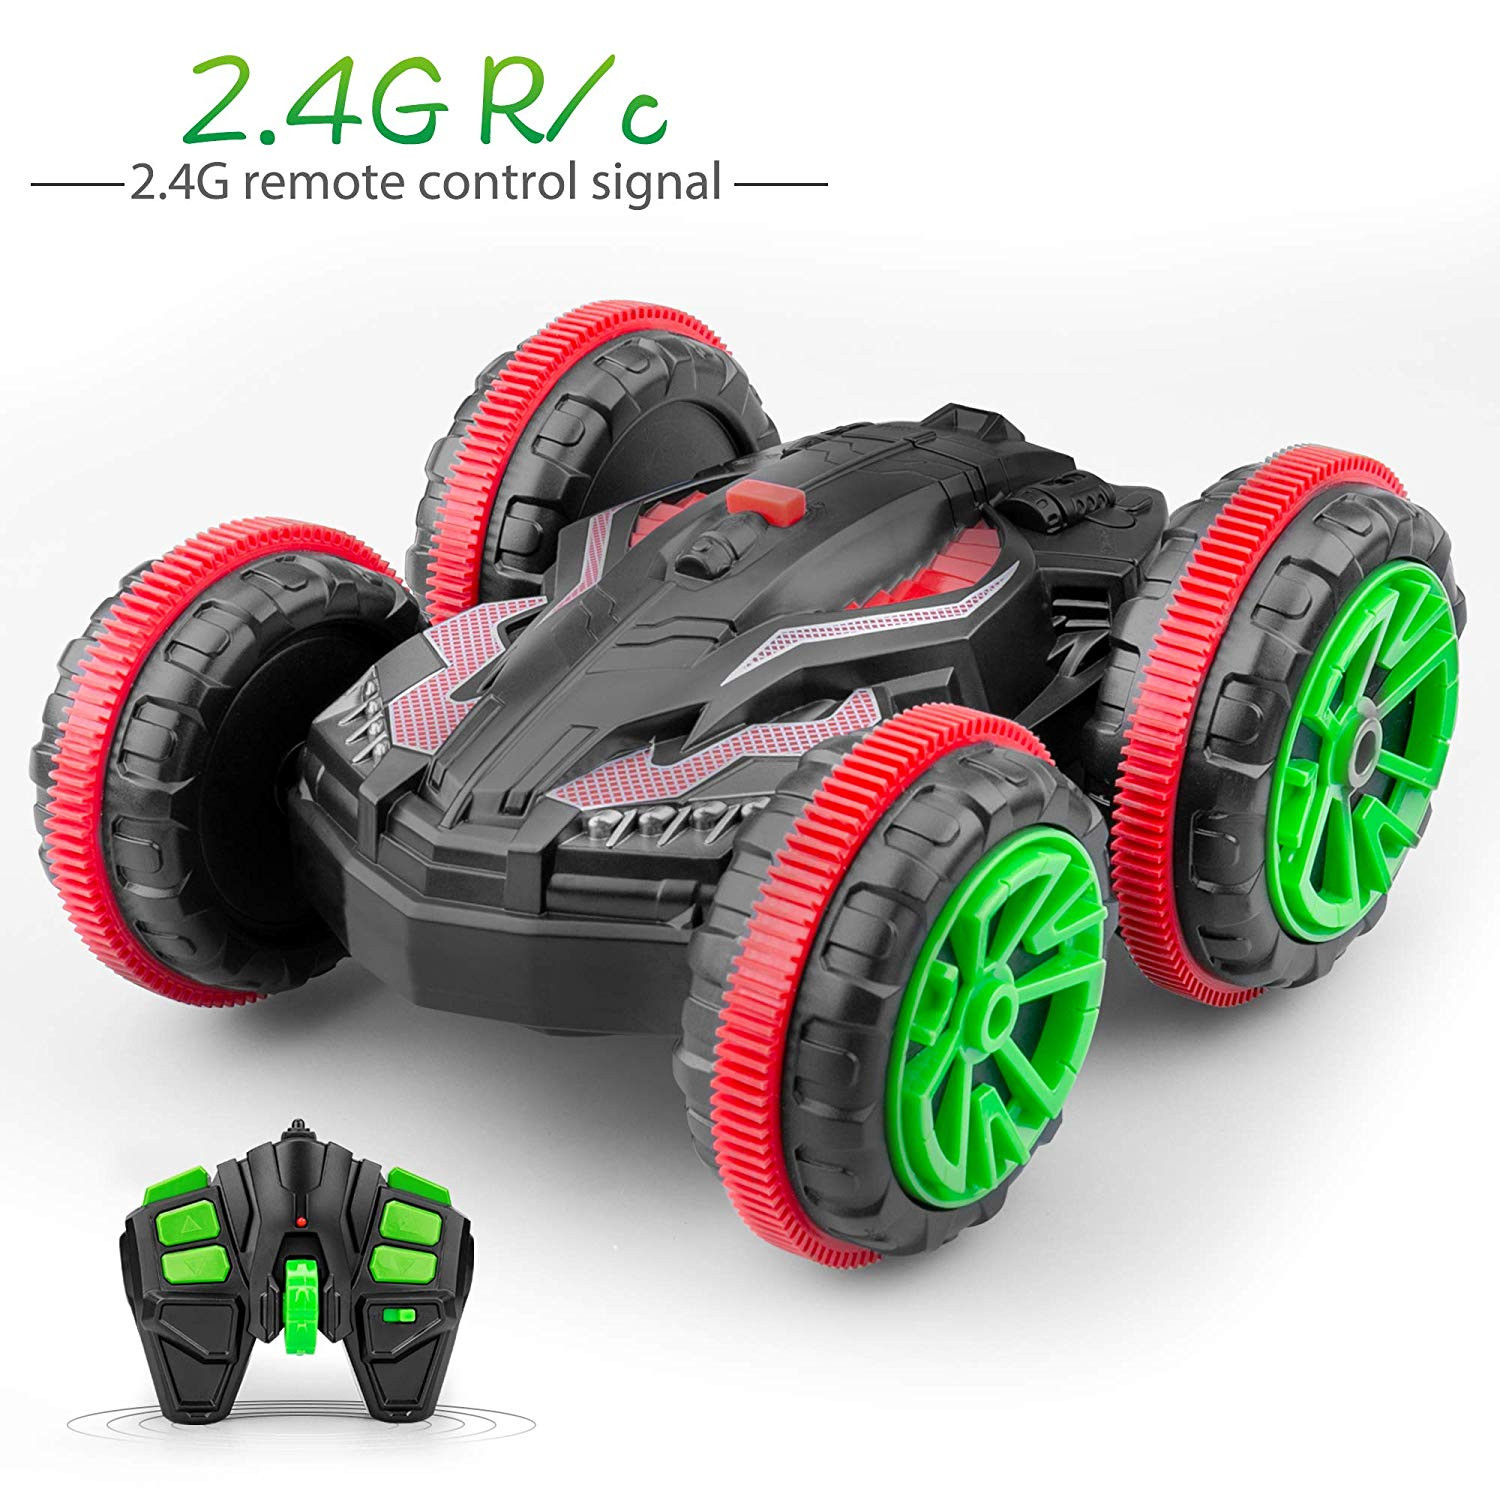 Ezire Remote Control Car, 2.4Ghz 4WD High Speed RC Vehicle Racing Car Toy Gift Double Sided Stunt Car 360 Degree Spins Flips Land and Water Toy Cars